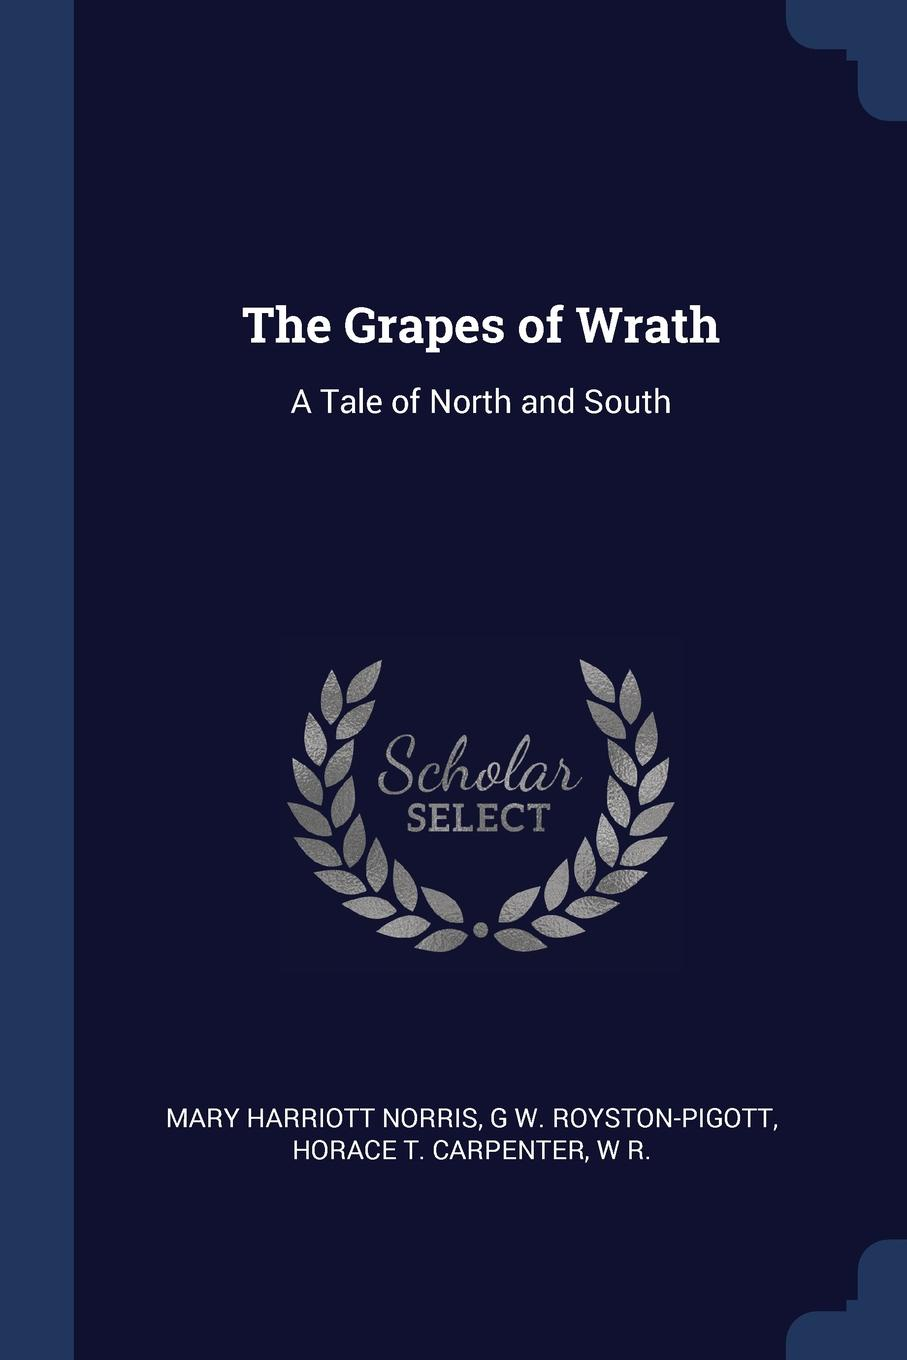 The Grapes of Wrath. A Tale of North and South. Mary Harriott Norris, G W. Royston-Pigott, Horace T. Carpenter